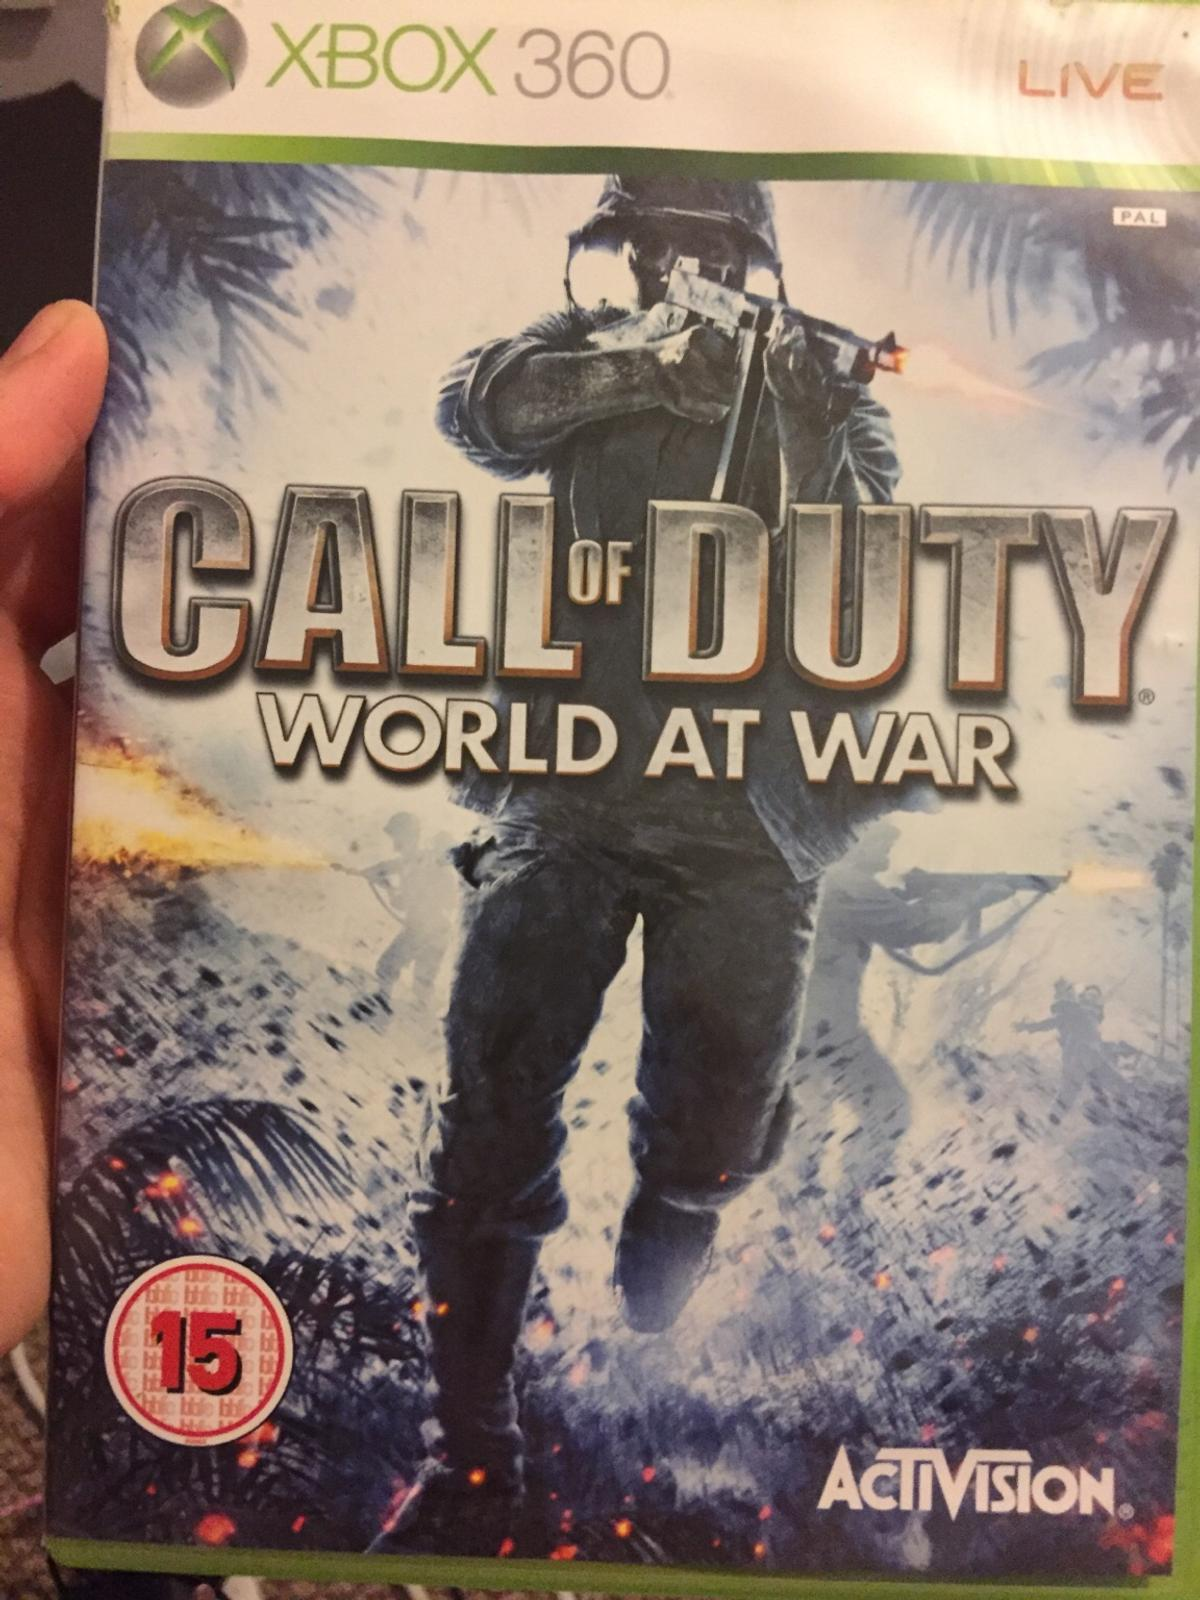 Xbox 360 Games In Nn10 Northamptonshire For 8 00 For Sale Shpock